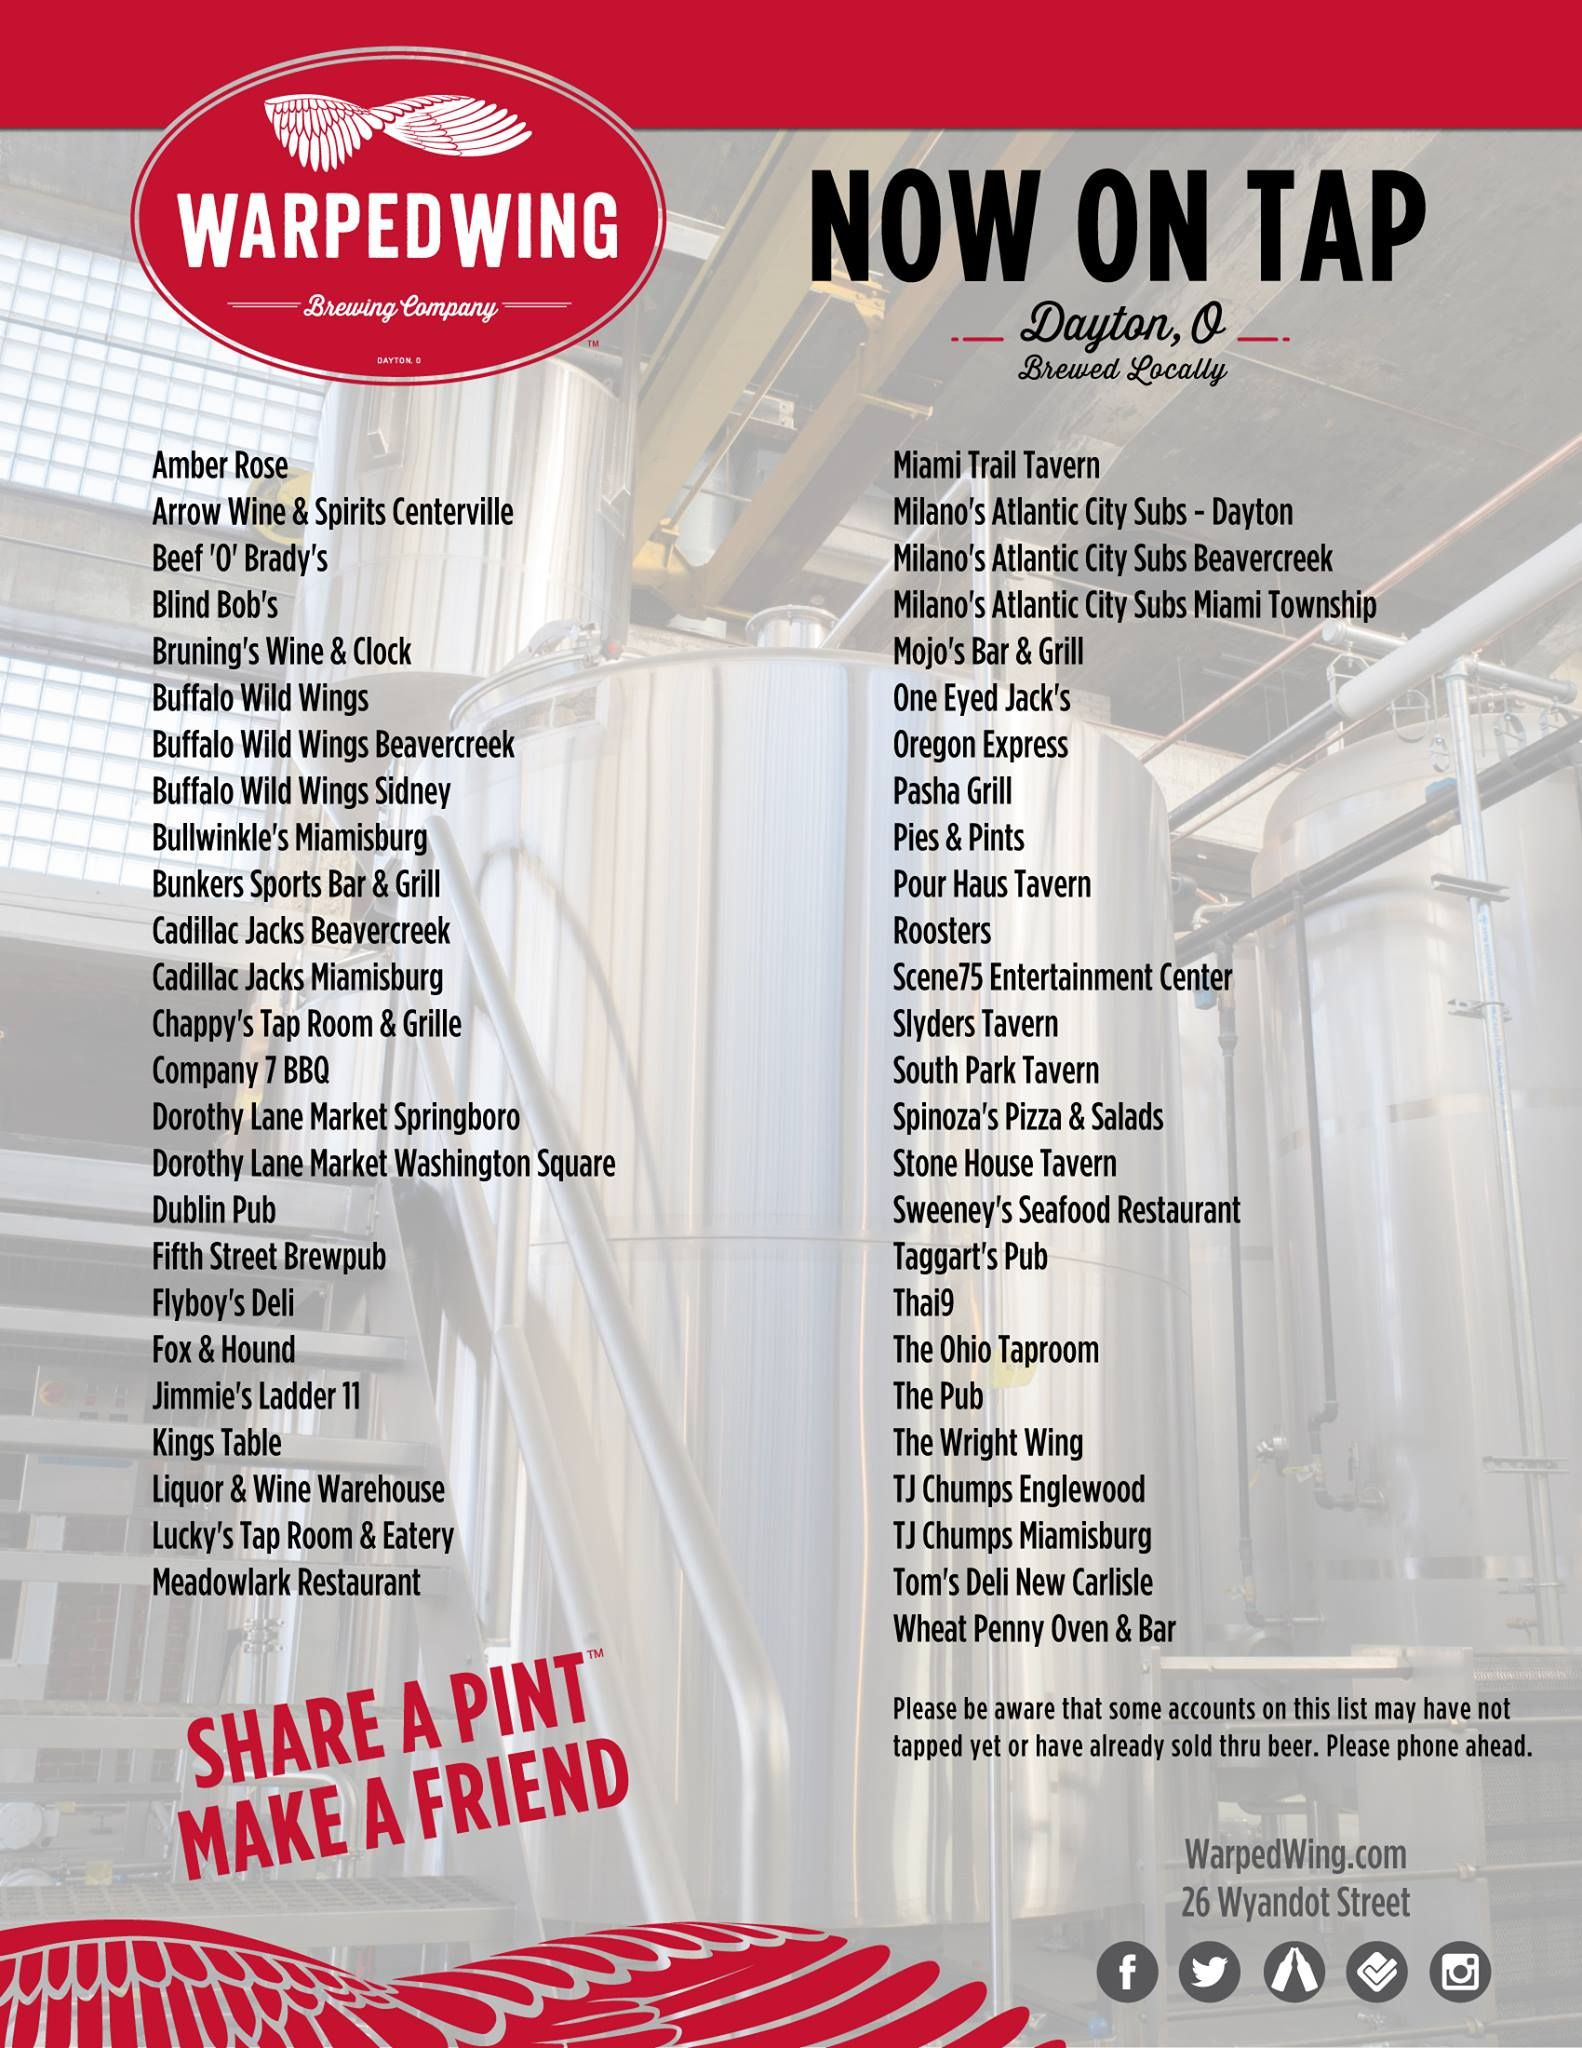 Warped Wing Brewing Company On Tap In The Dayton Metro Area Http Www Warpedwing Com Brewery Beer Brewing Company